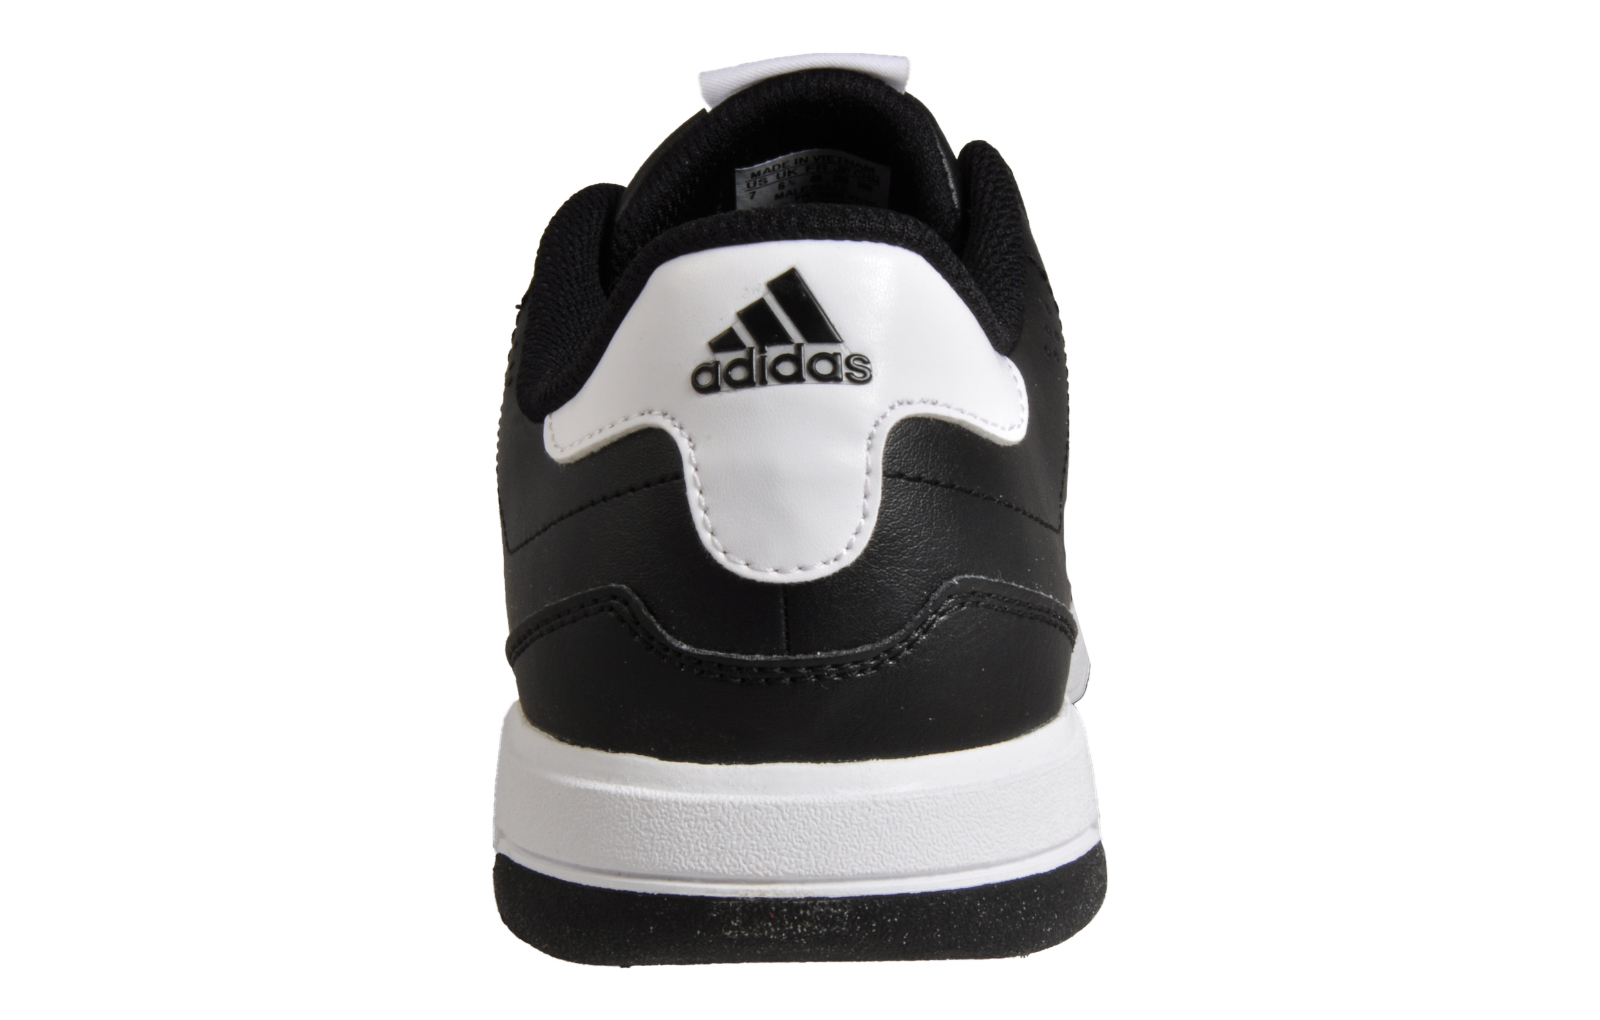 0b16af523b1d2 Adidas Oracle V Men s Court Sports Shoes Casual Fashion Trainers Black